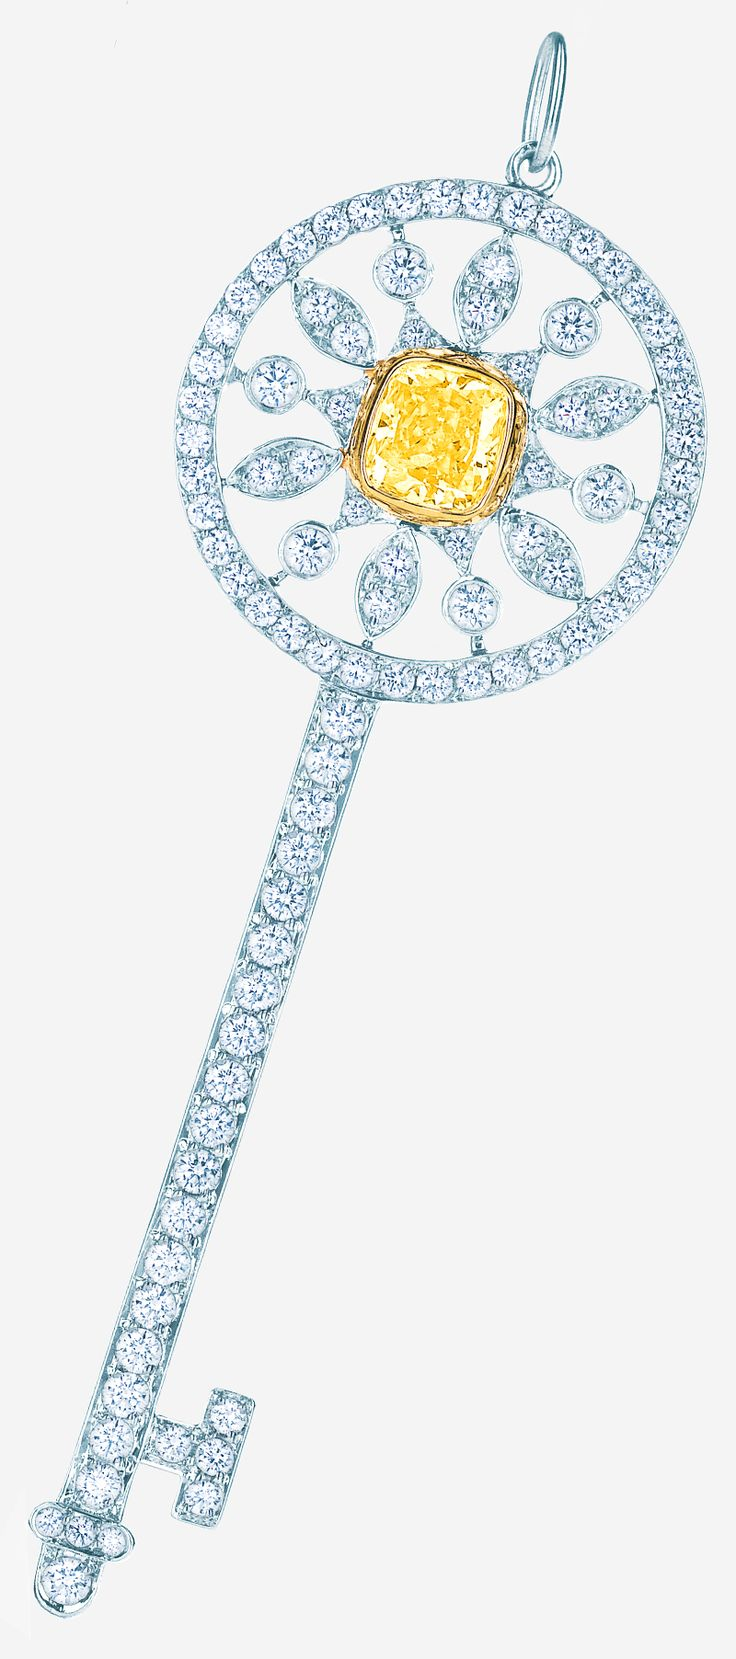 The key to her heart. Tiffany Keys star key pendant in platinum and 18k gold with a yellow diamond and round brilliant white diamonds.